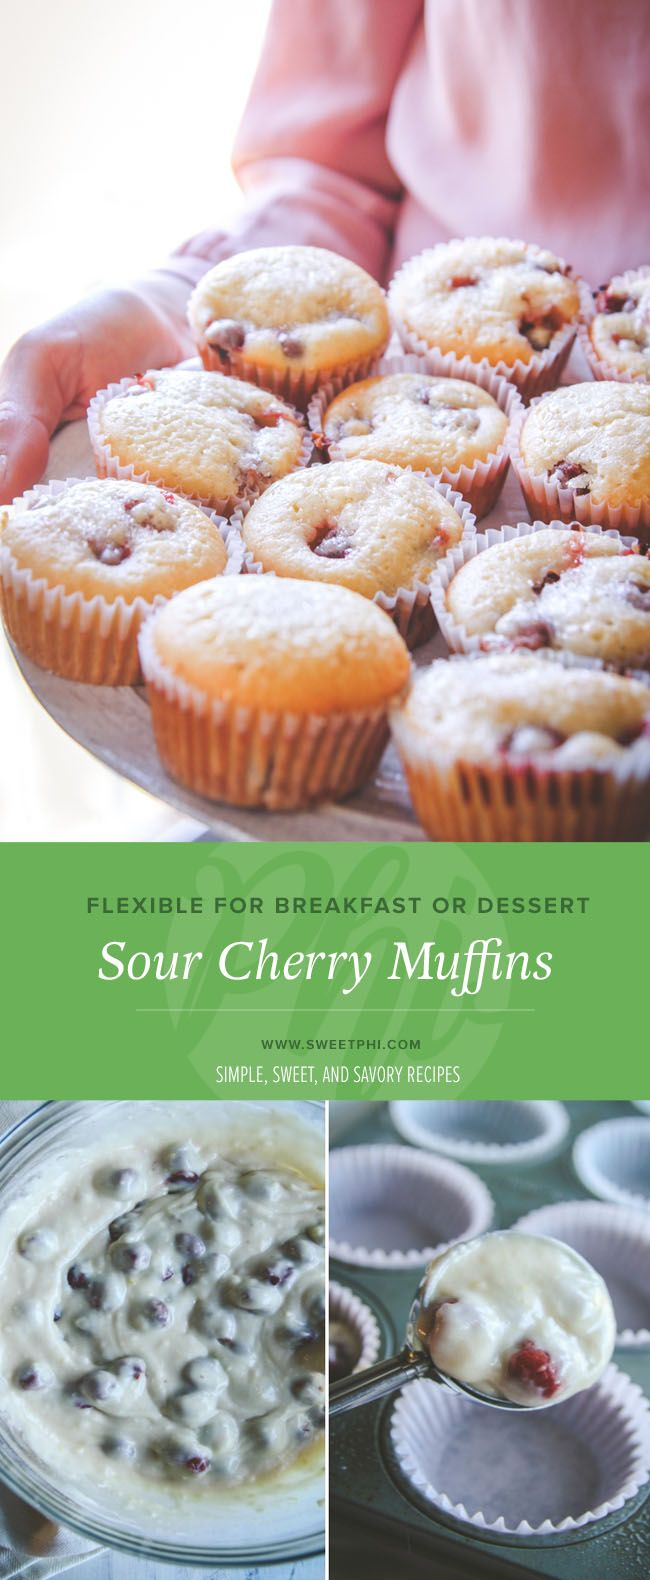 Perfect for breakfast or a sweet treat, these sour cherry muffins are perfect